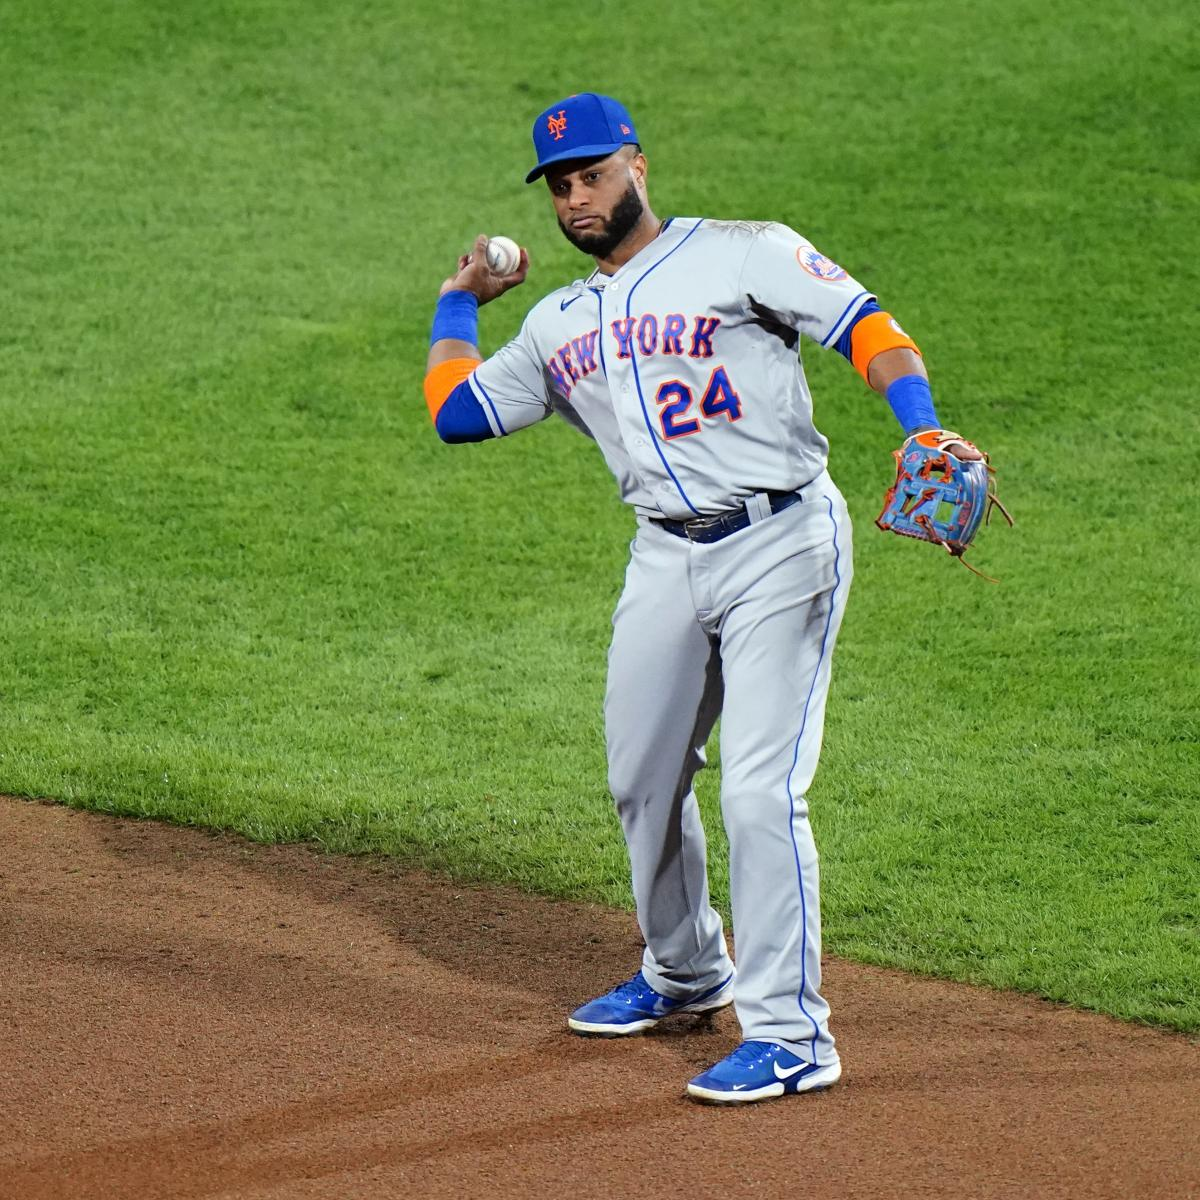 Mets' Robinson Cano Suspended for 2021 MLB Season After 2nd PED Violation